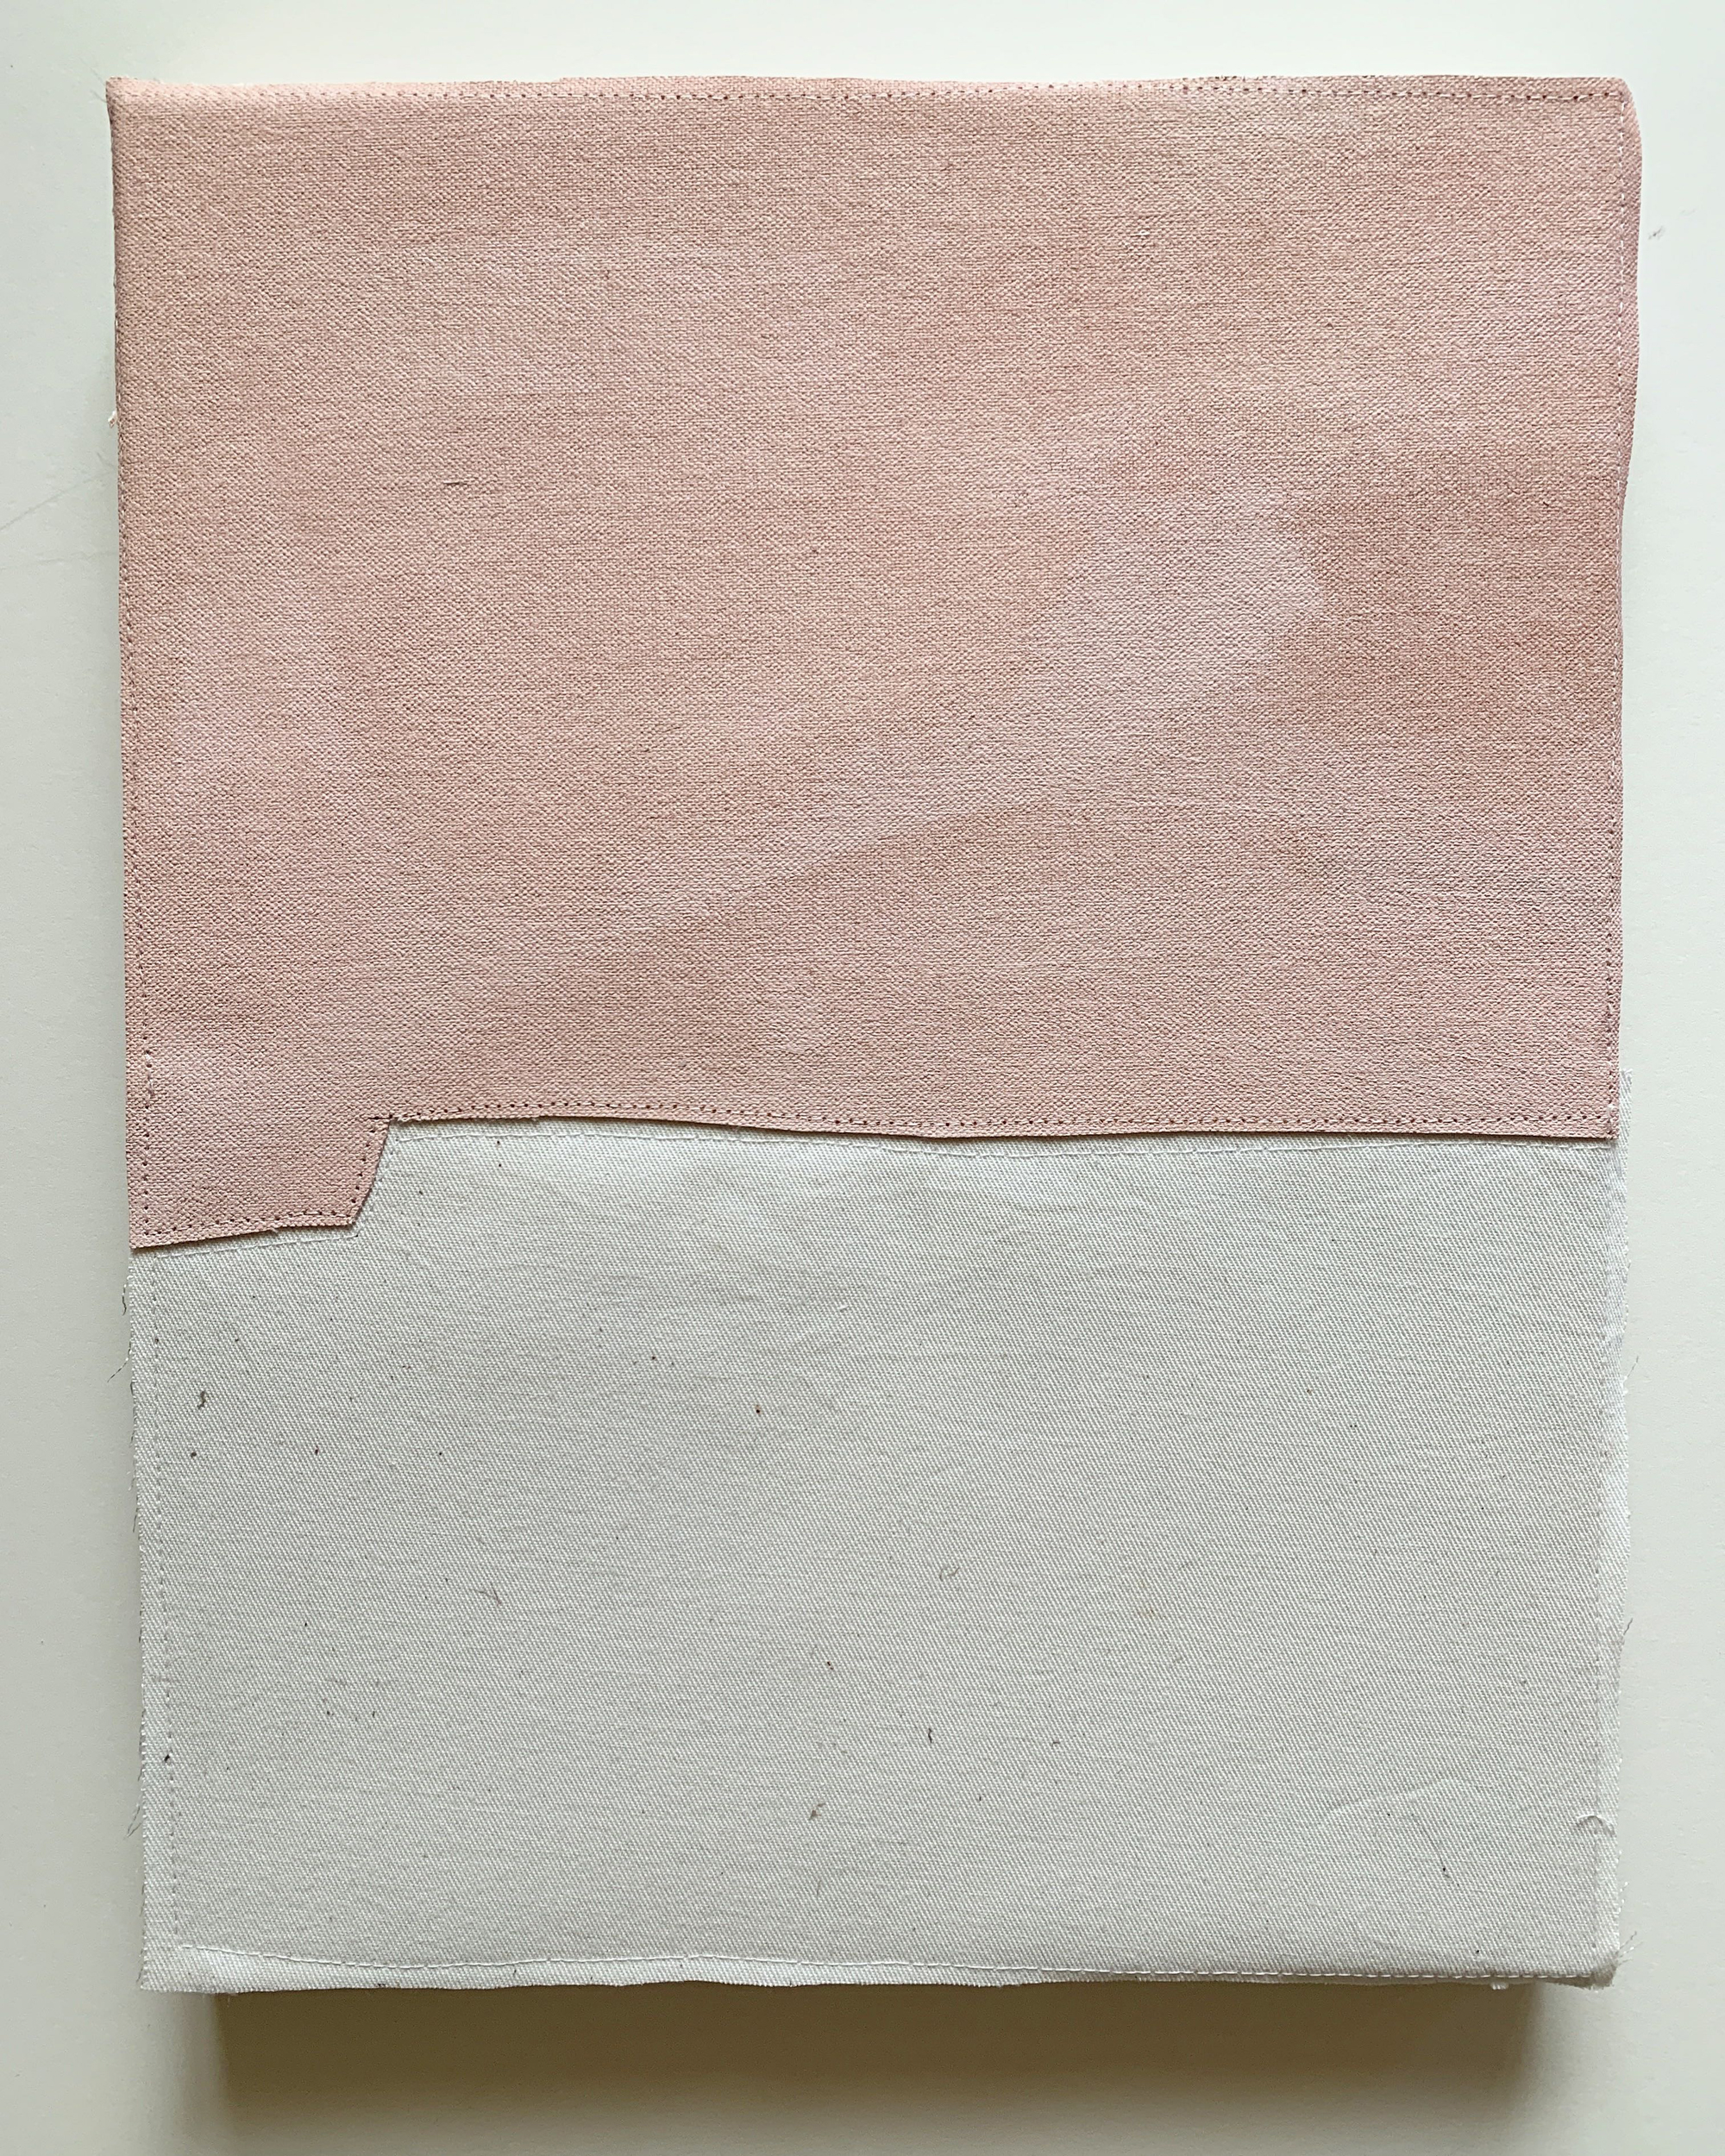 Jonathan Parker SC # 95, 2019 Acrylic on canvas, sewn 14 x 11 inches